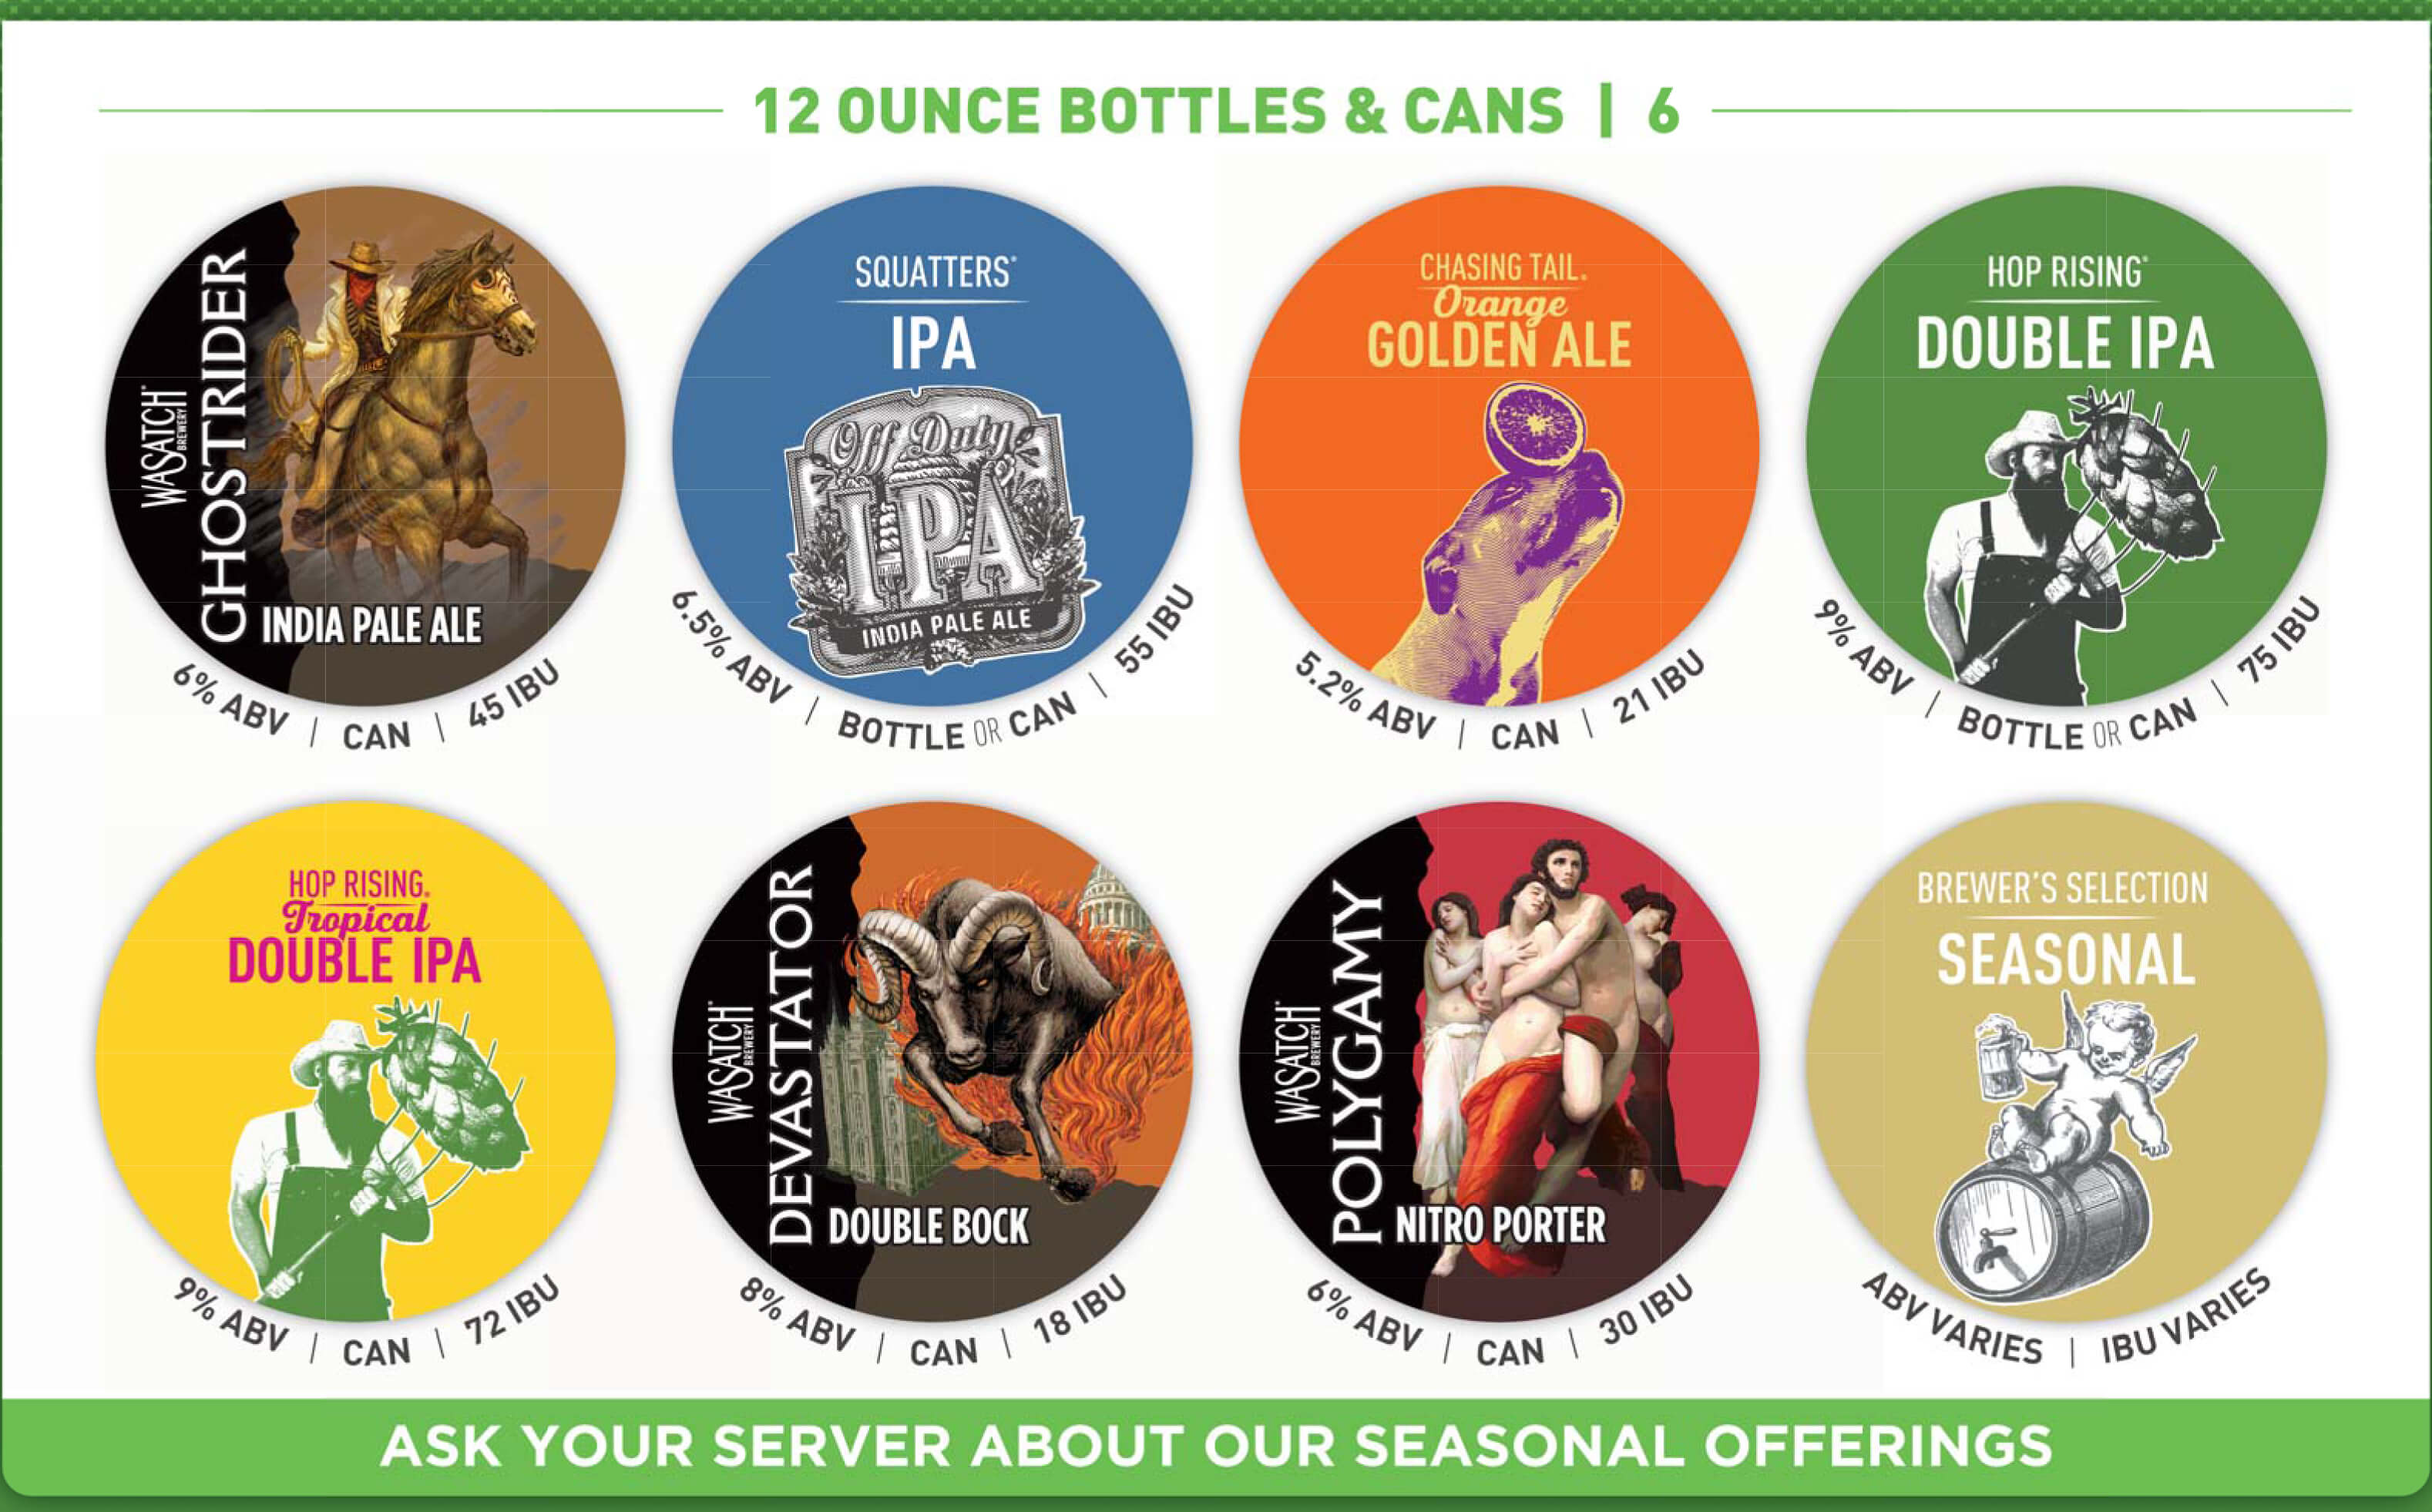 Squatters brew pub 12 ounce bottles and cans menu